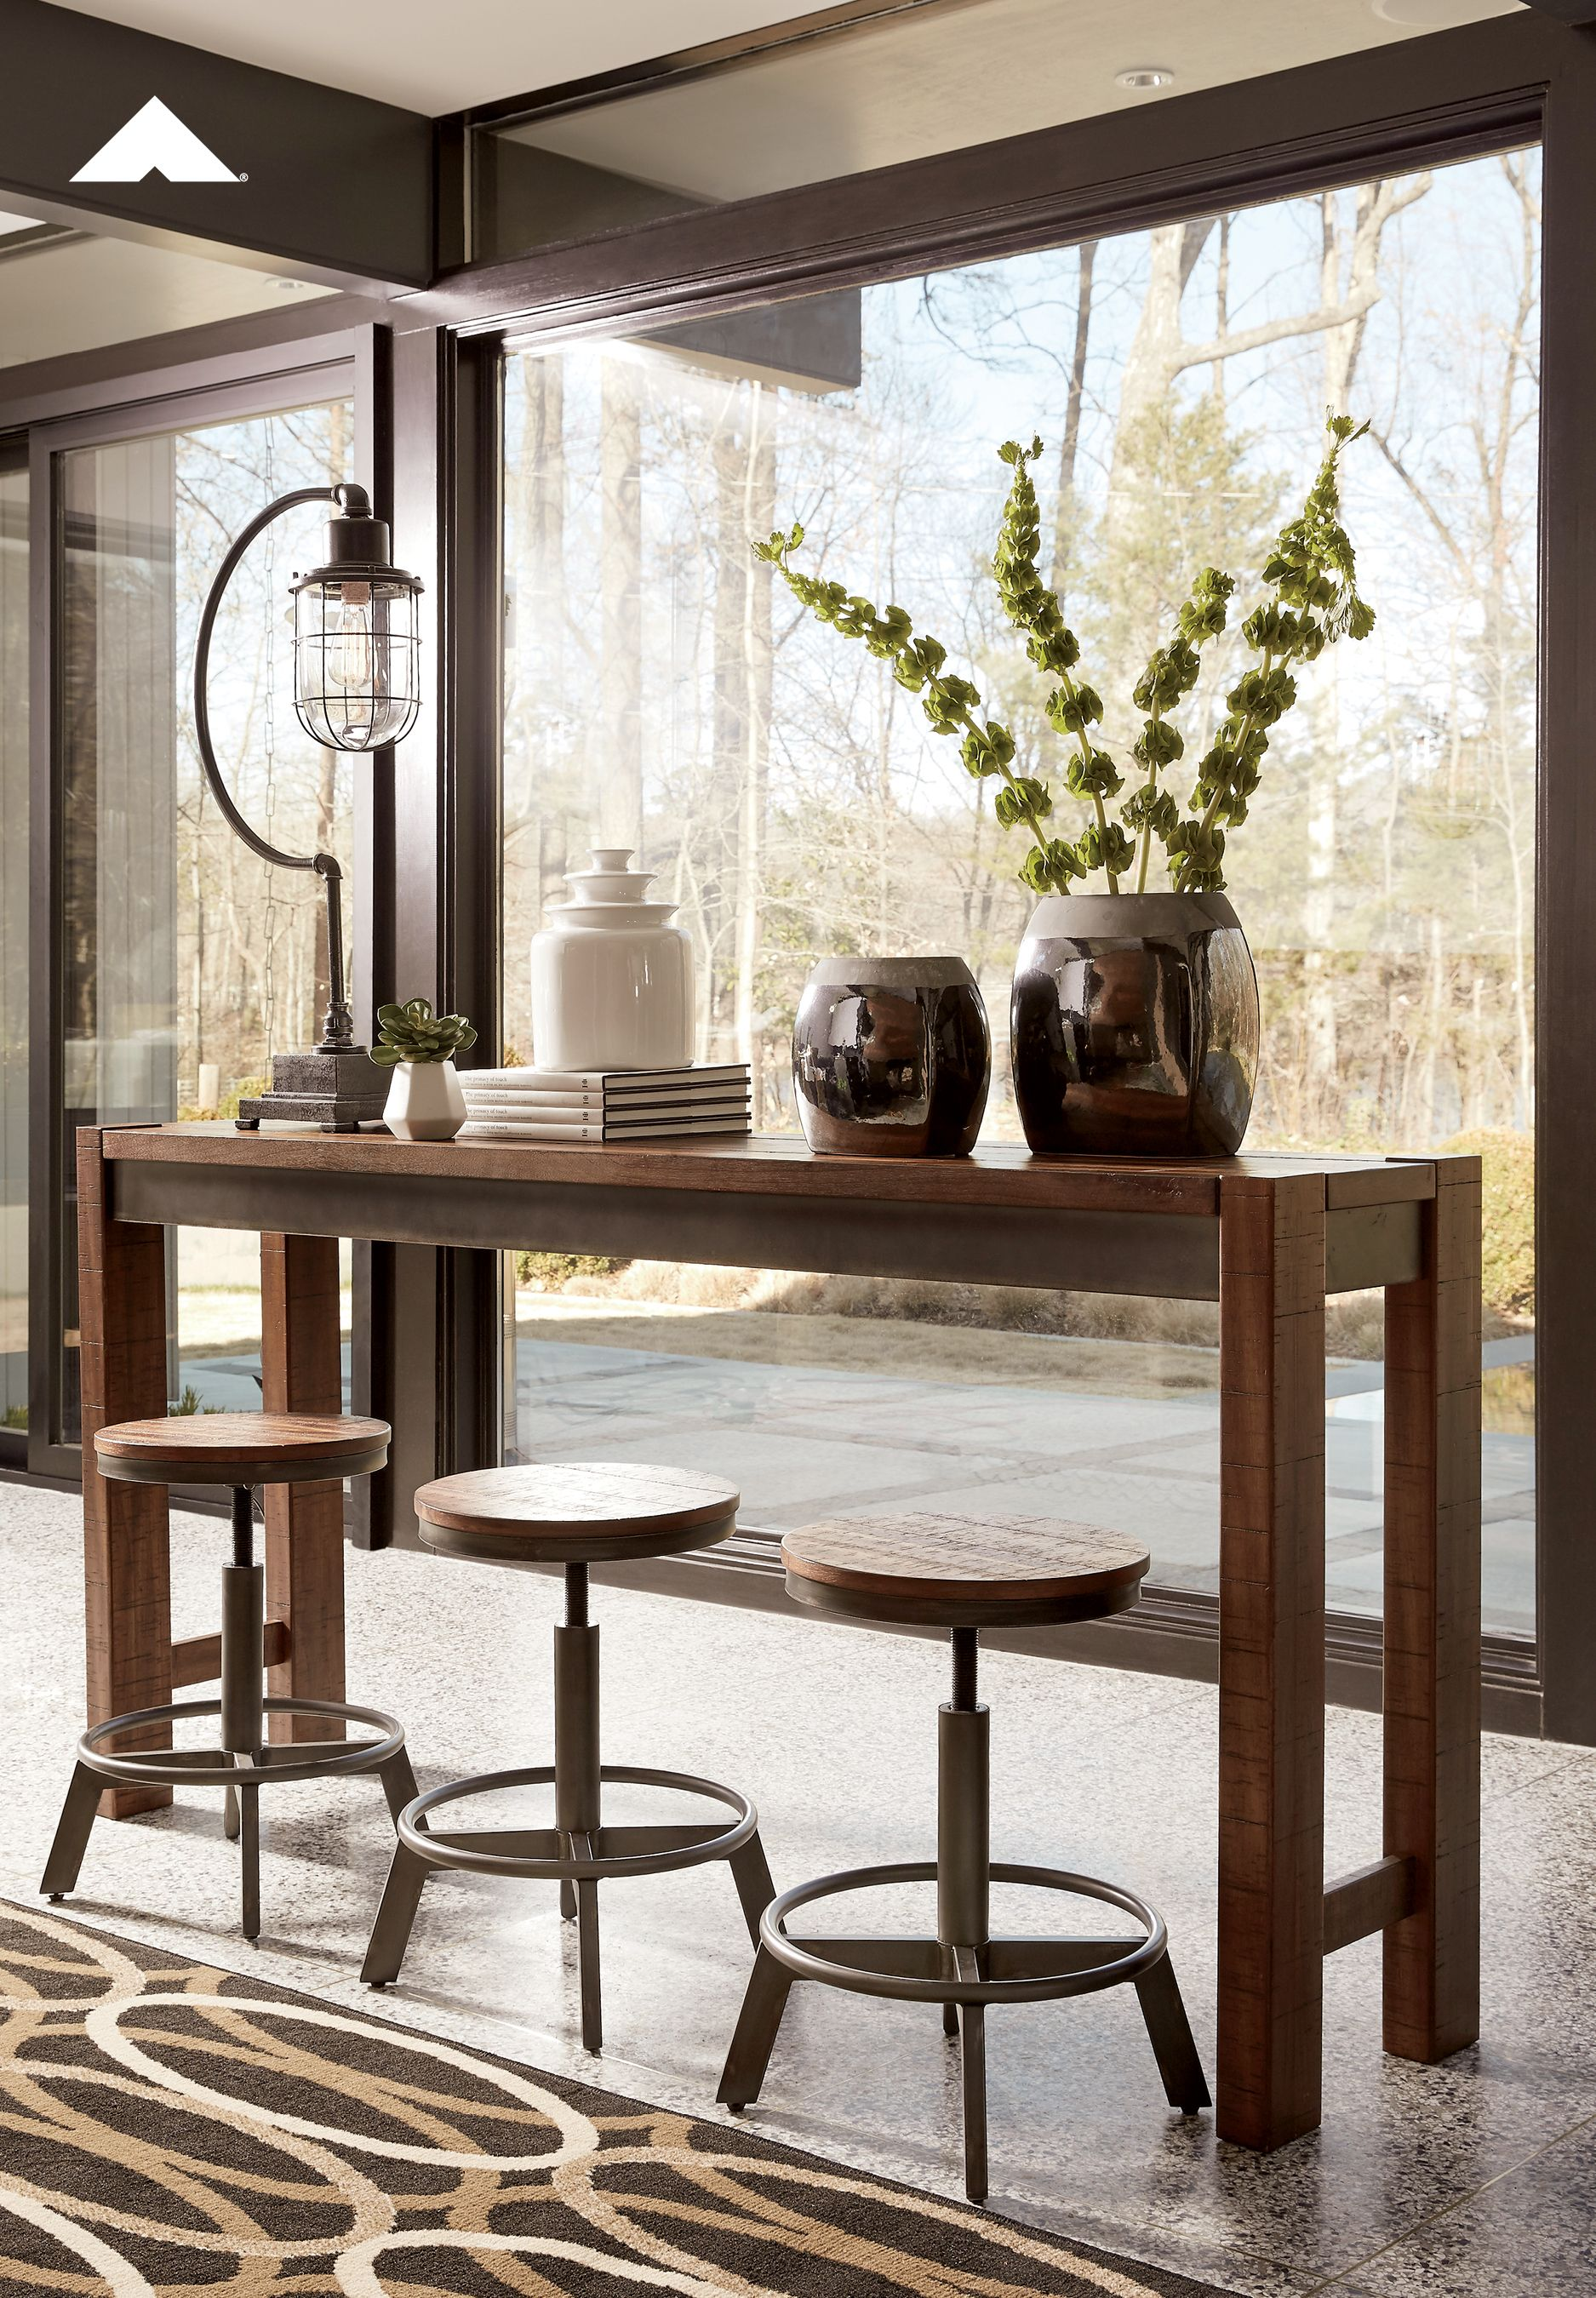 Torjin Long Counter Table And Stools Make Your Home The Hub For Cool Vibes With This Long Counter Tabl Counter Height Dining Table Pub Table Dining Room Sets